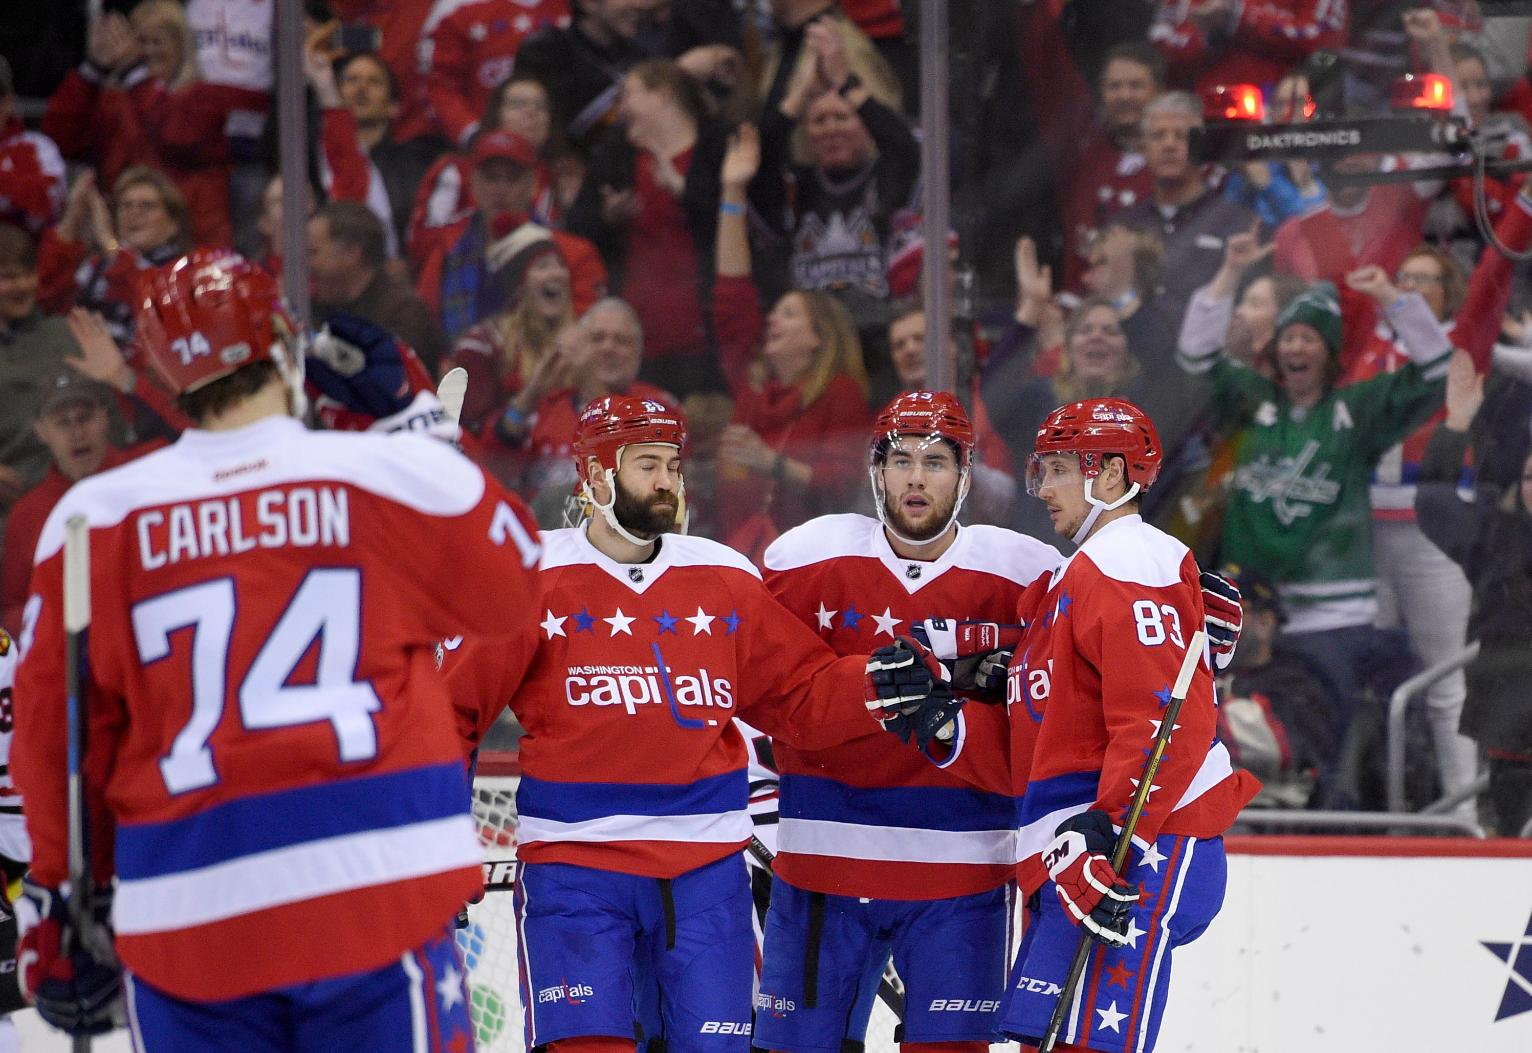 Capitals rout Blackhawks 6-0 to extend winning streak to 8